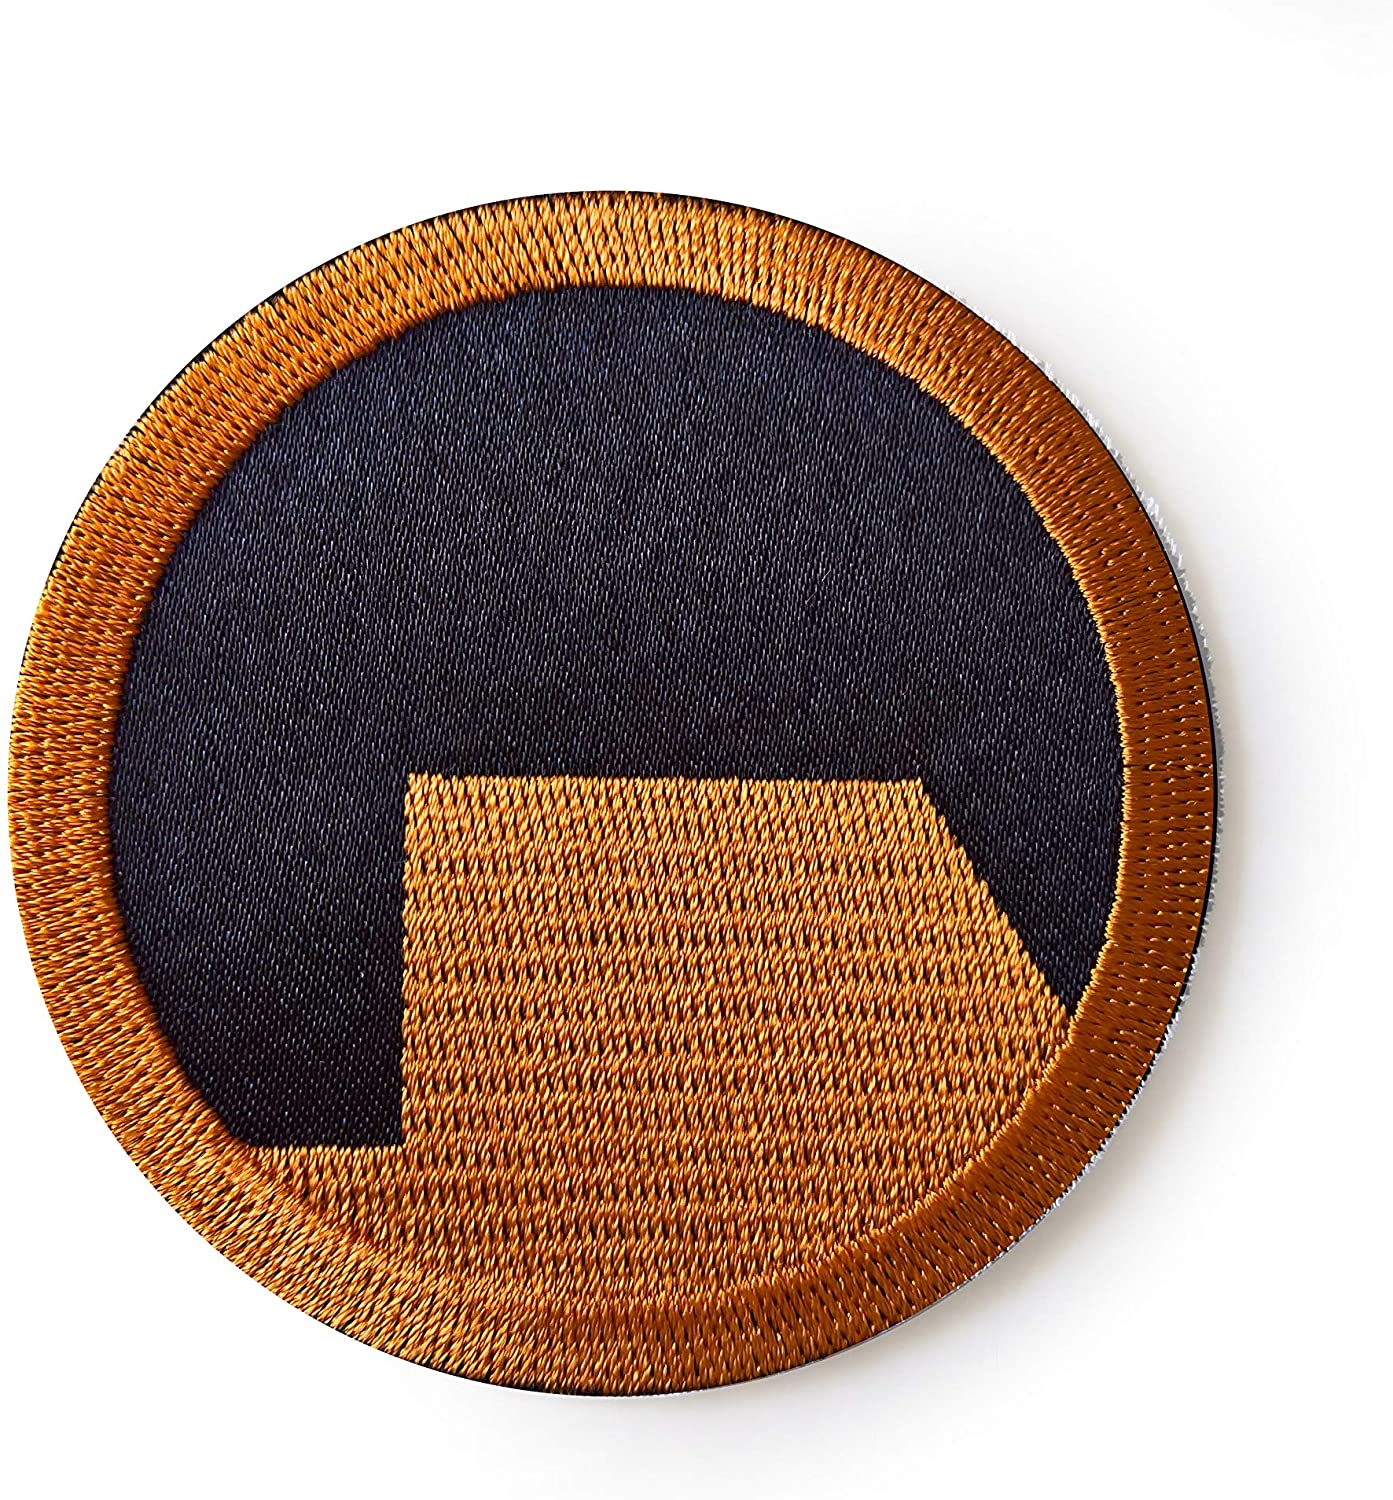 Black Mesa Patch Sew on Orange Patch Half Life Inspired Patch Gordon Freeman